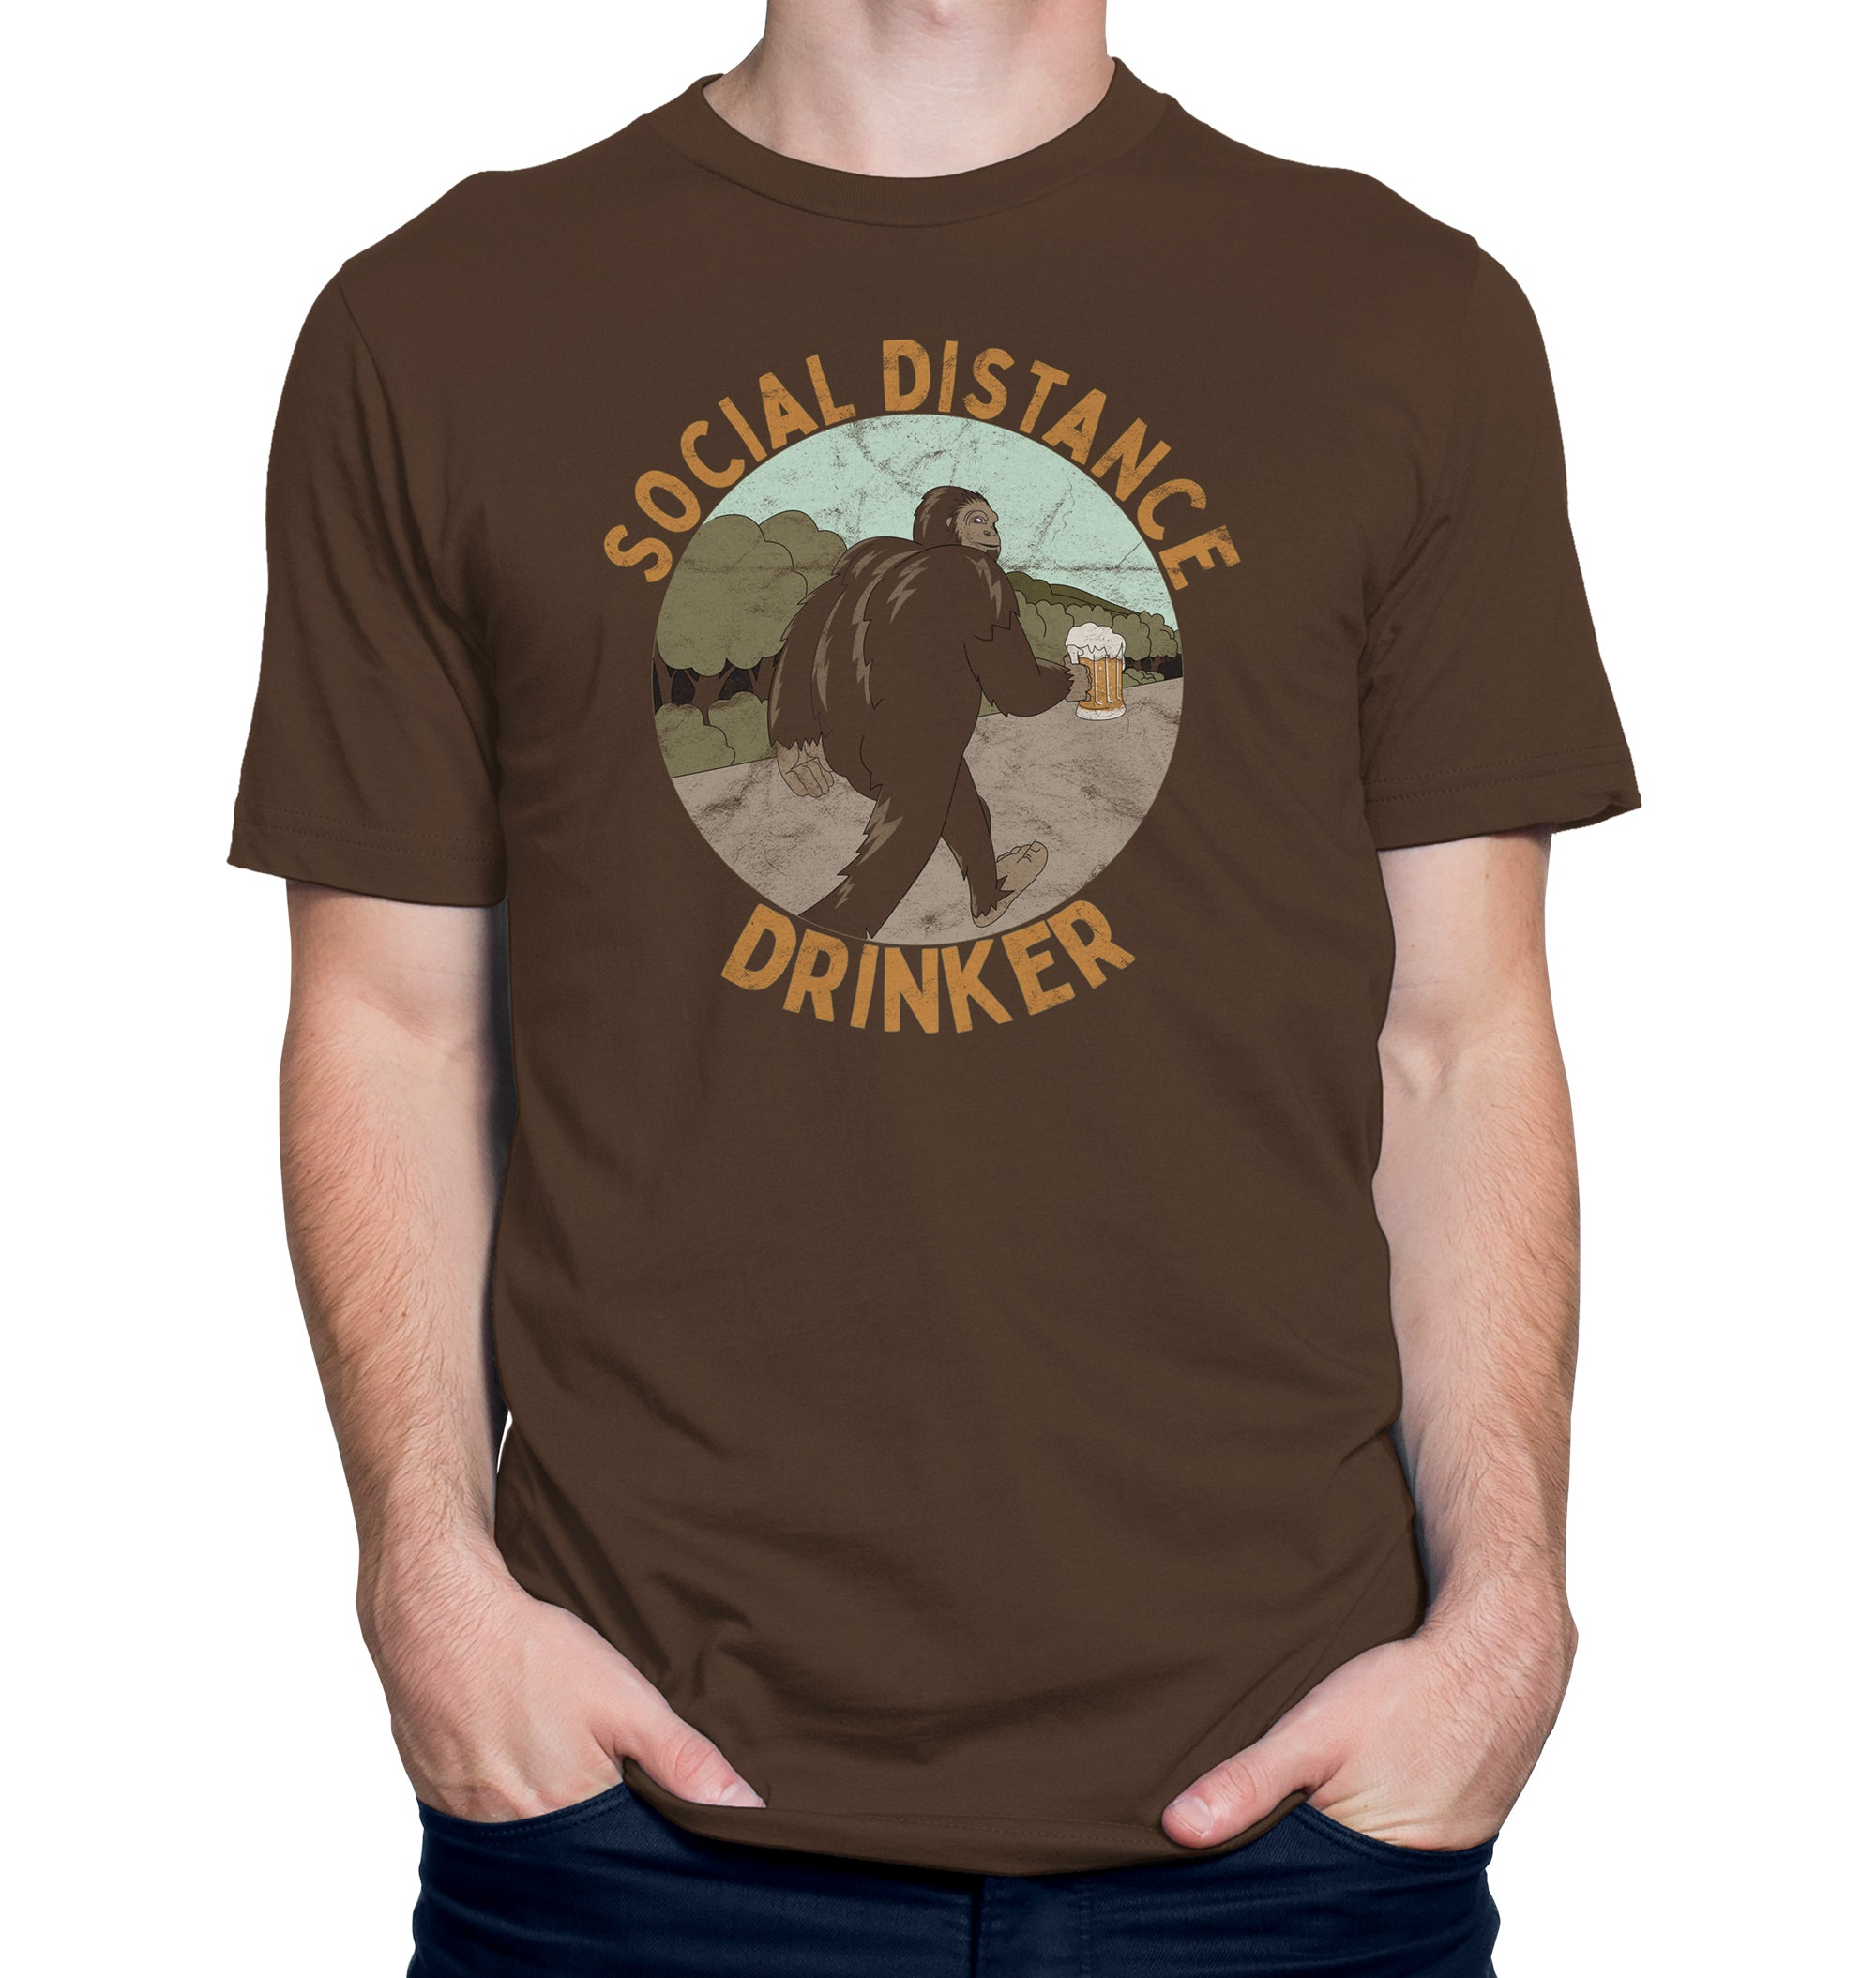 Social Distance Drinker Beer T-Shirt